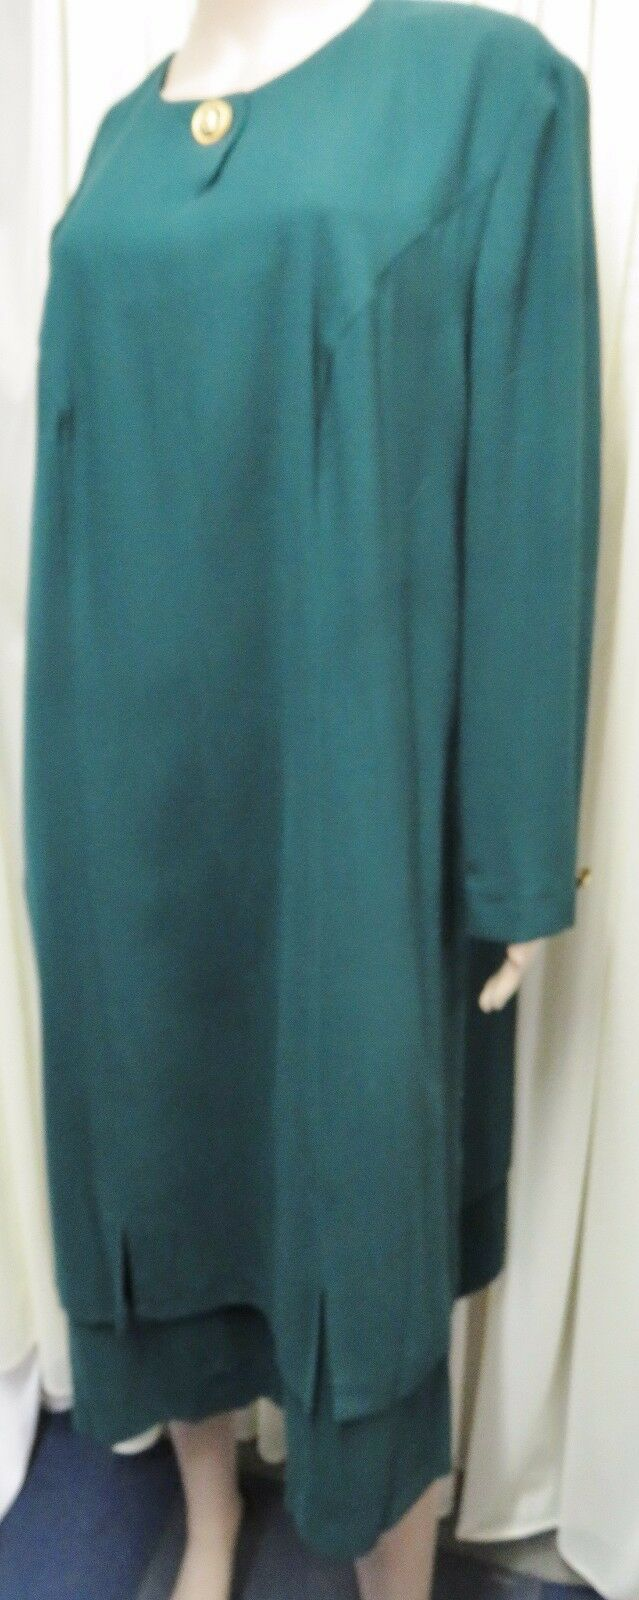 STUNNING VINTAGE SPORTING DARK GREEN PURE NEW WOOL LAYERED DRESS SIZE 22